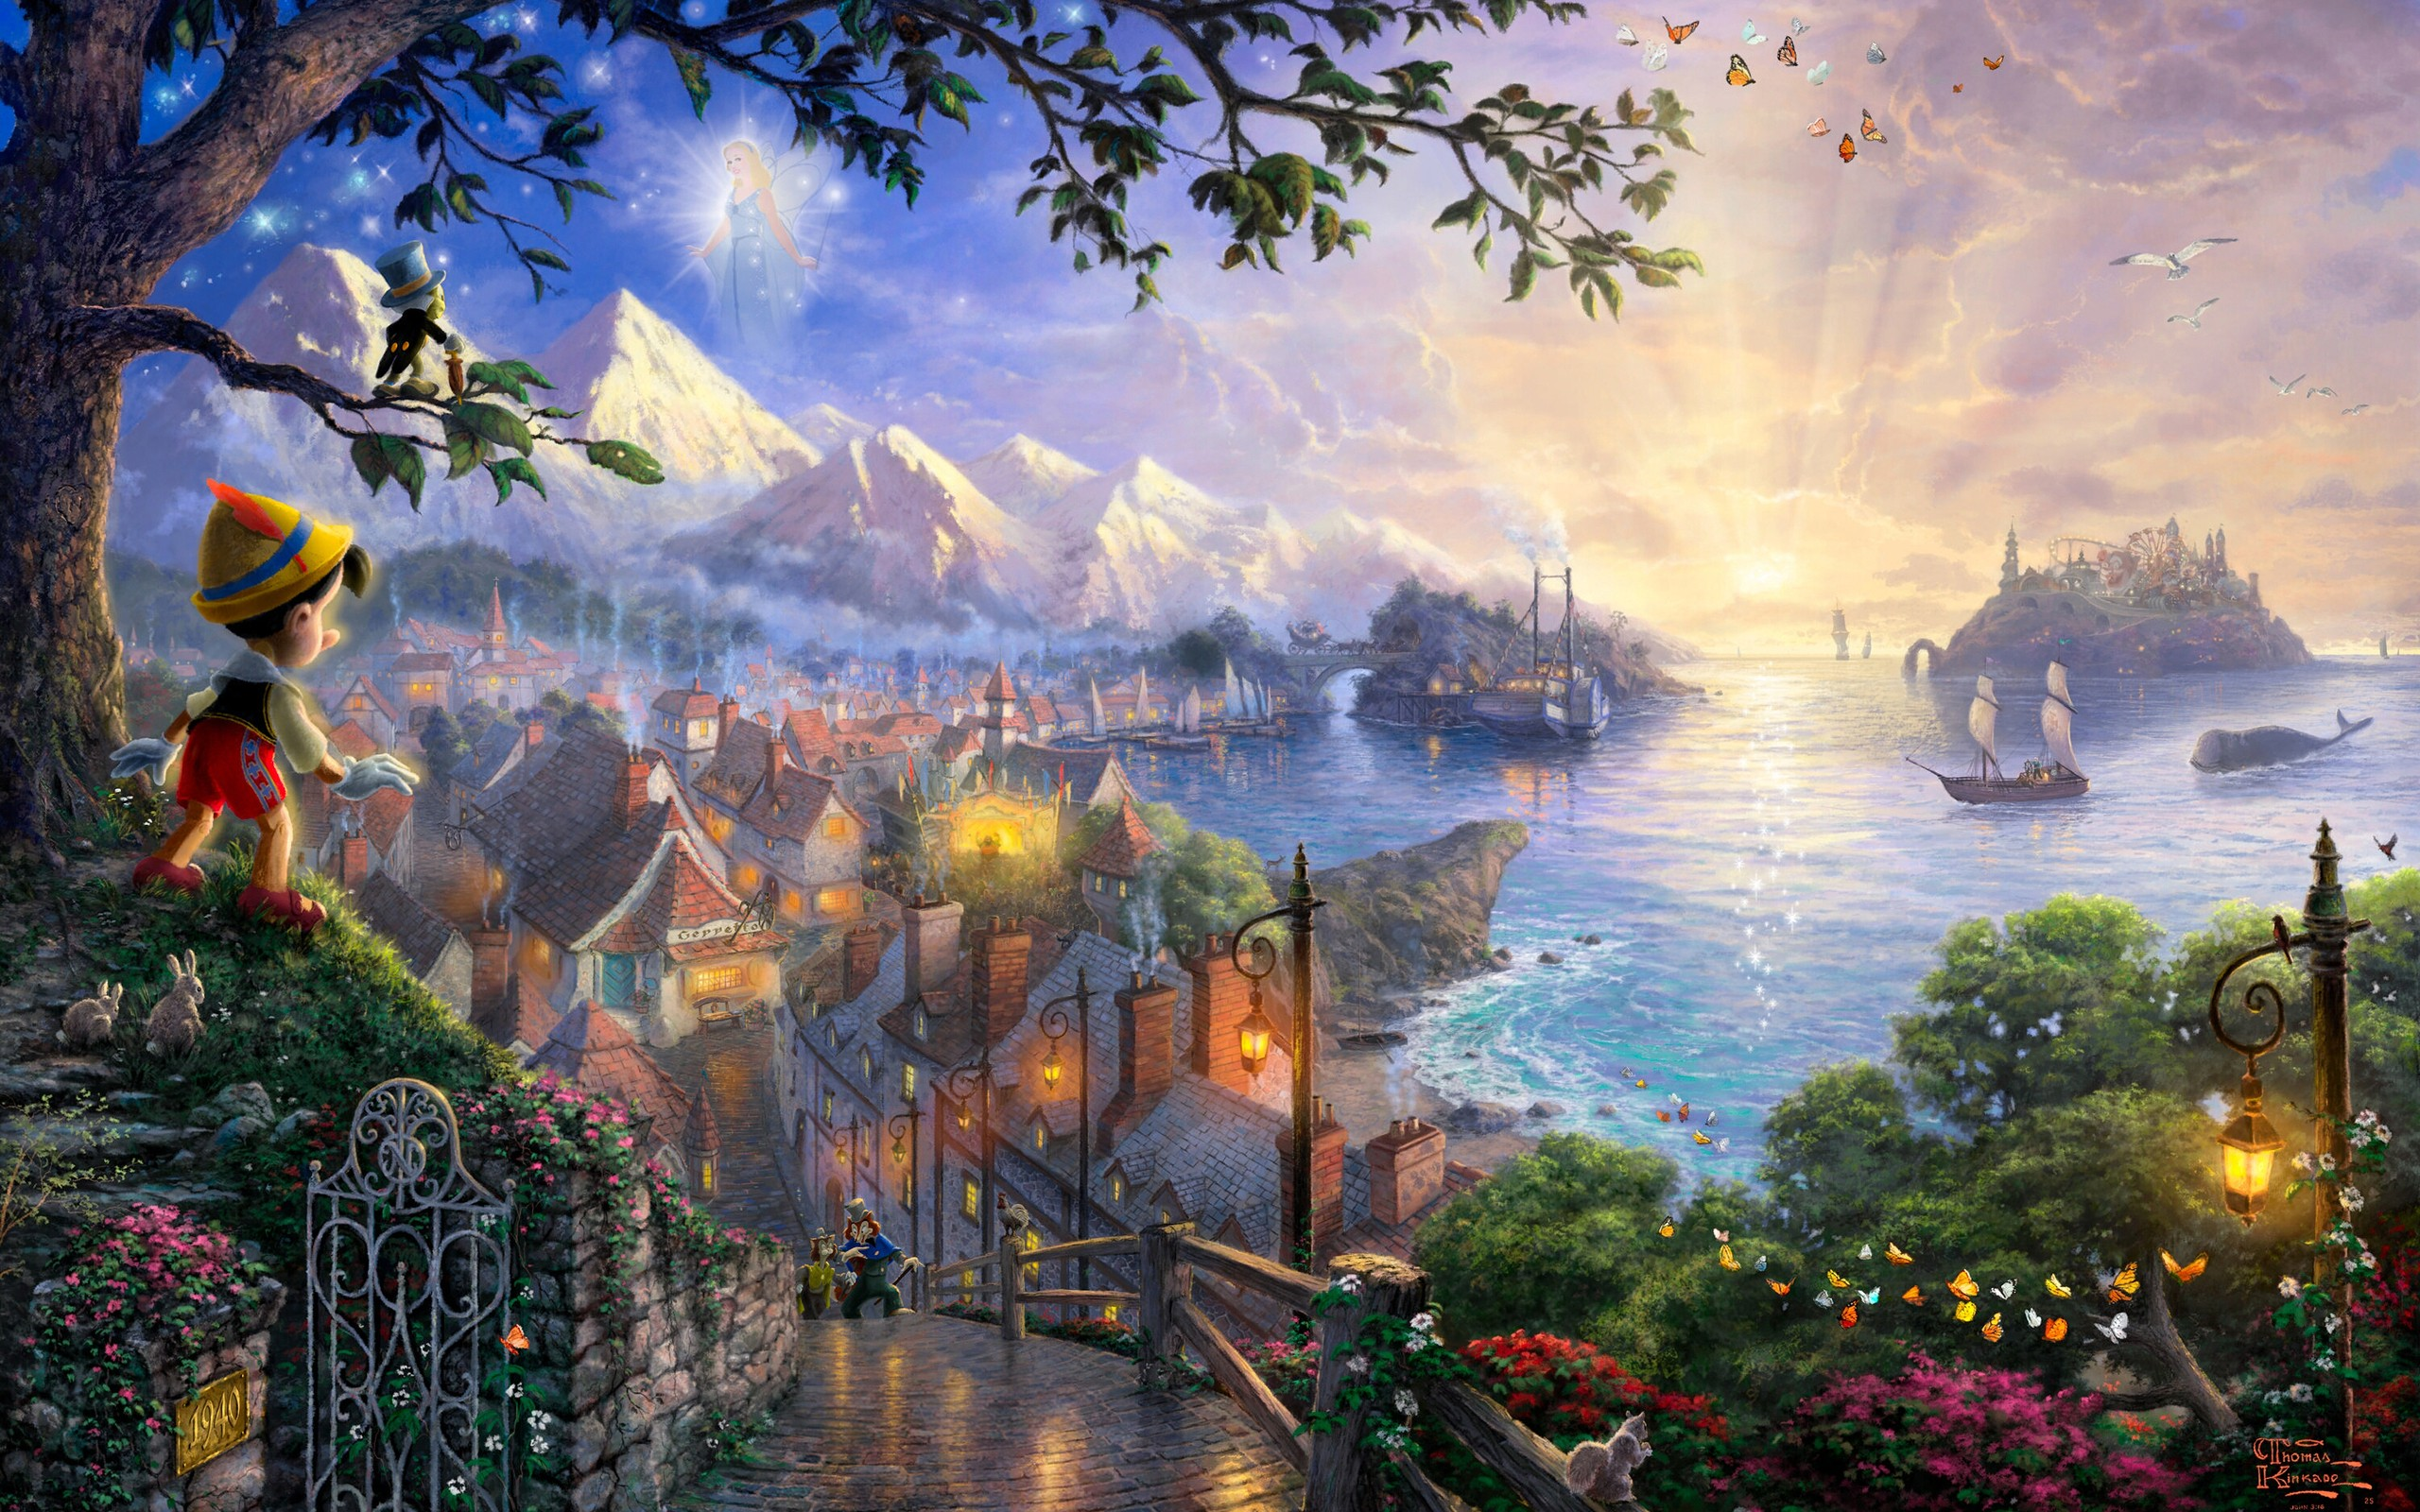 Sunset landscapes disney company movies ships fantasy art ...